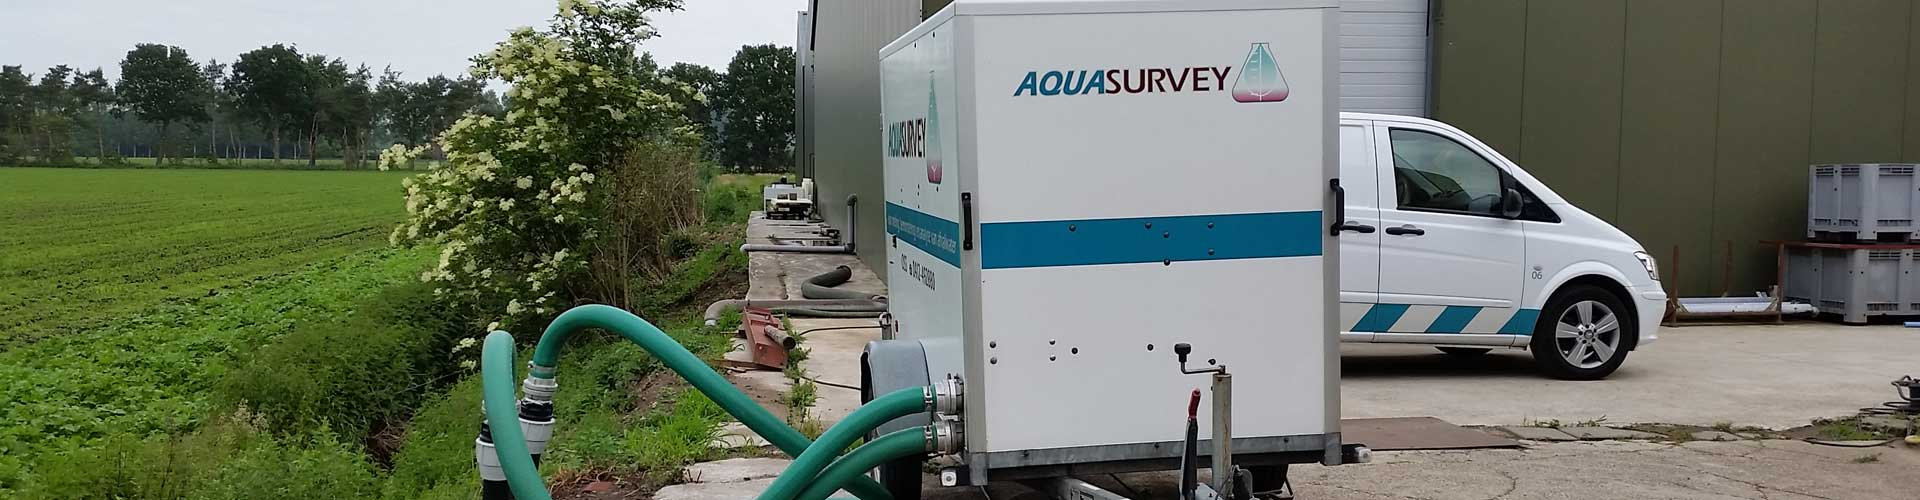 Aquasurvey   meetwagen 3